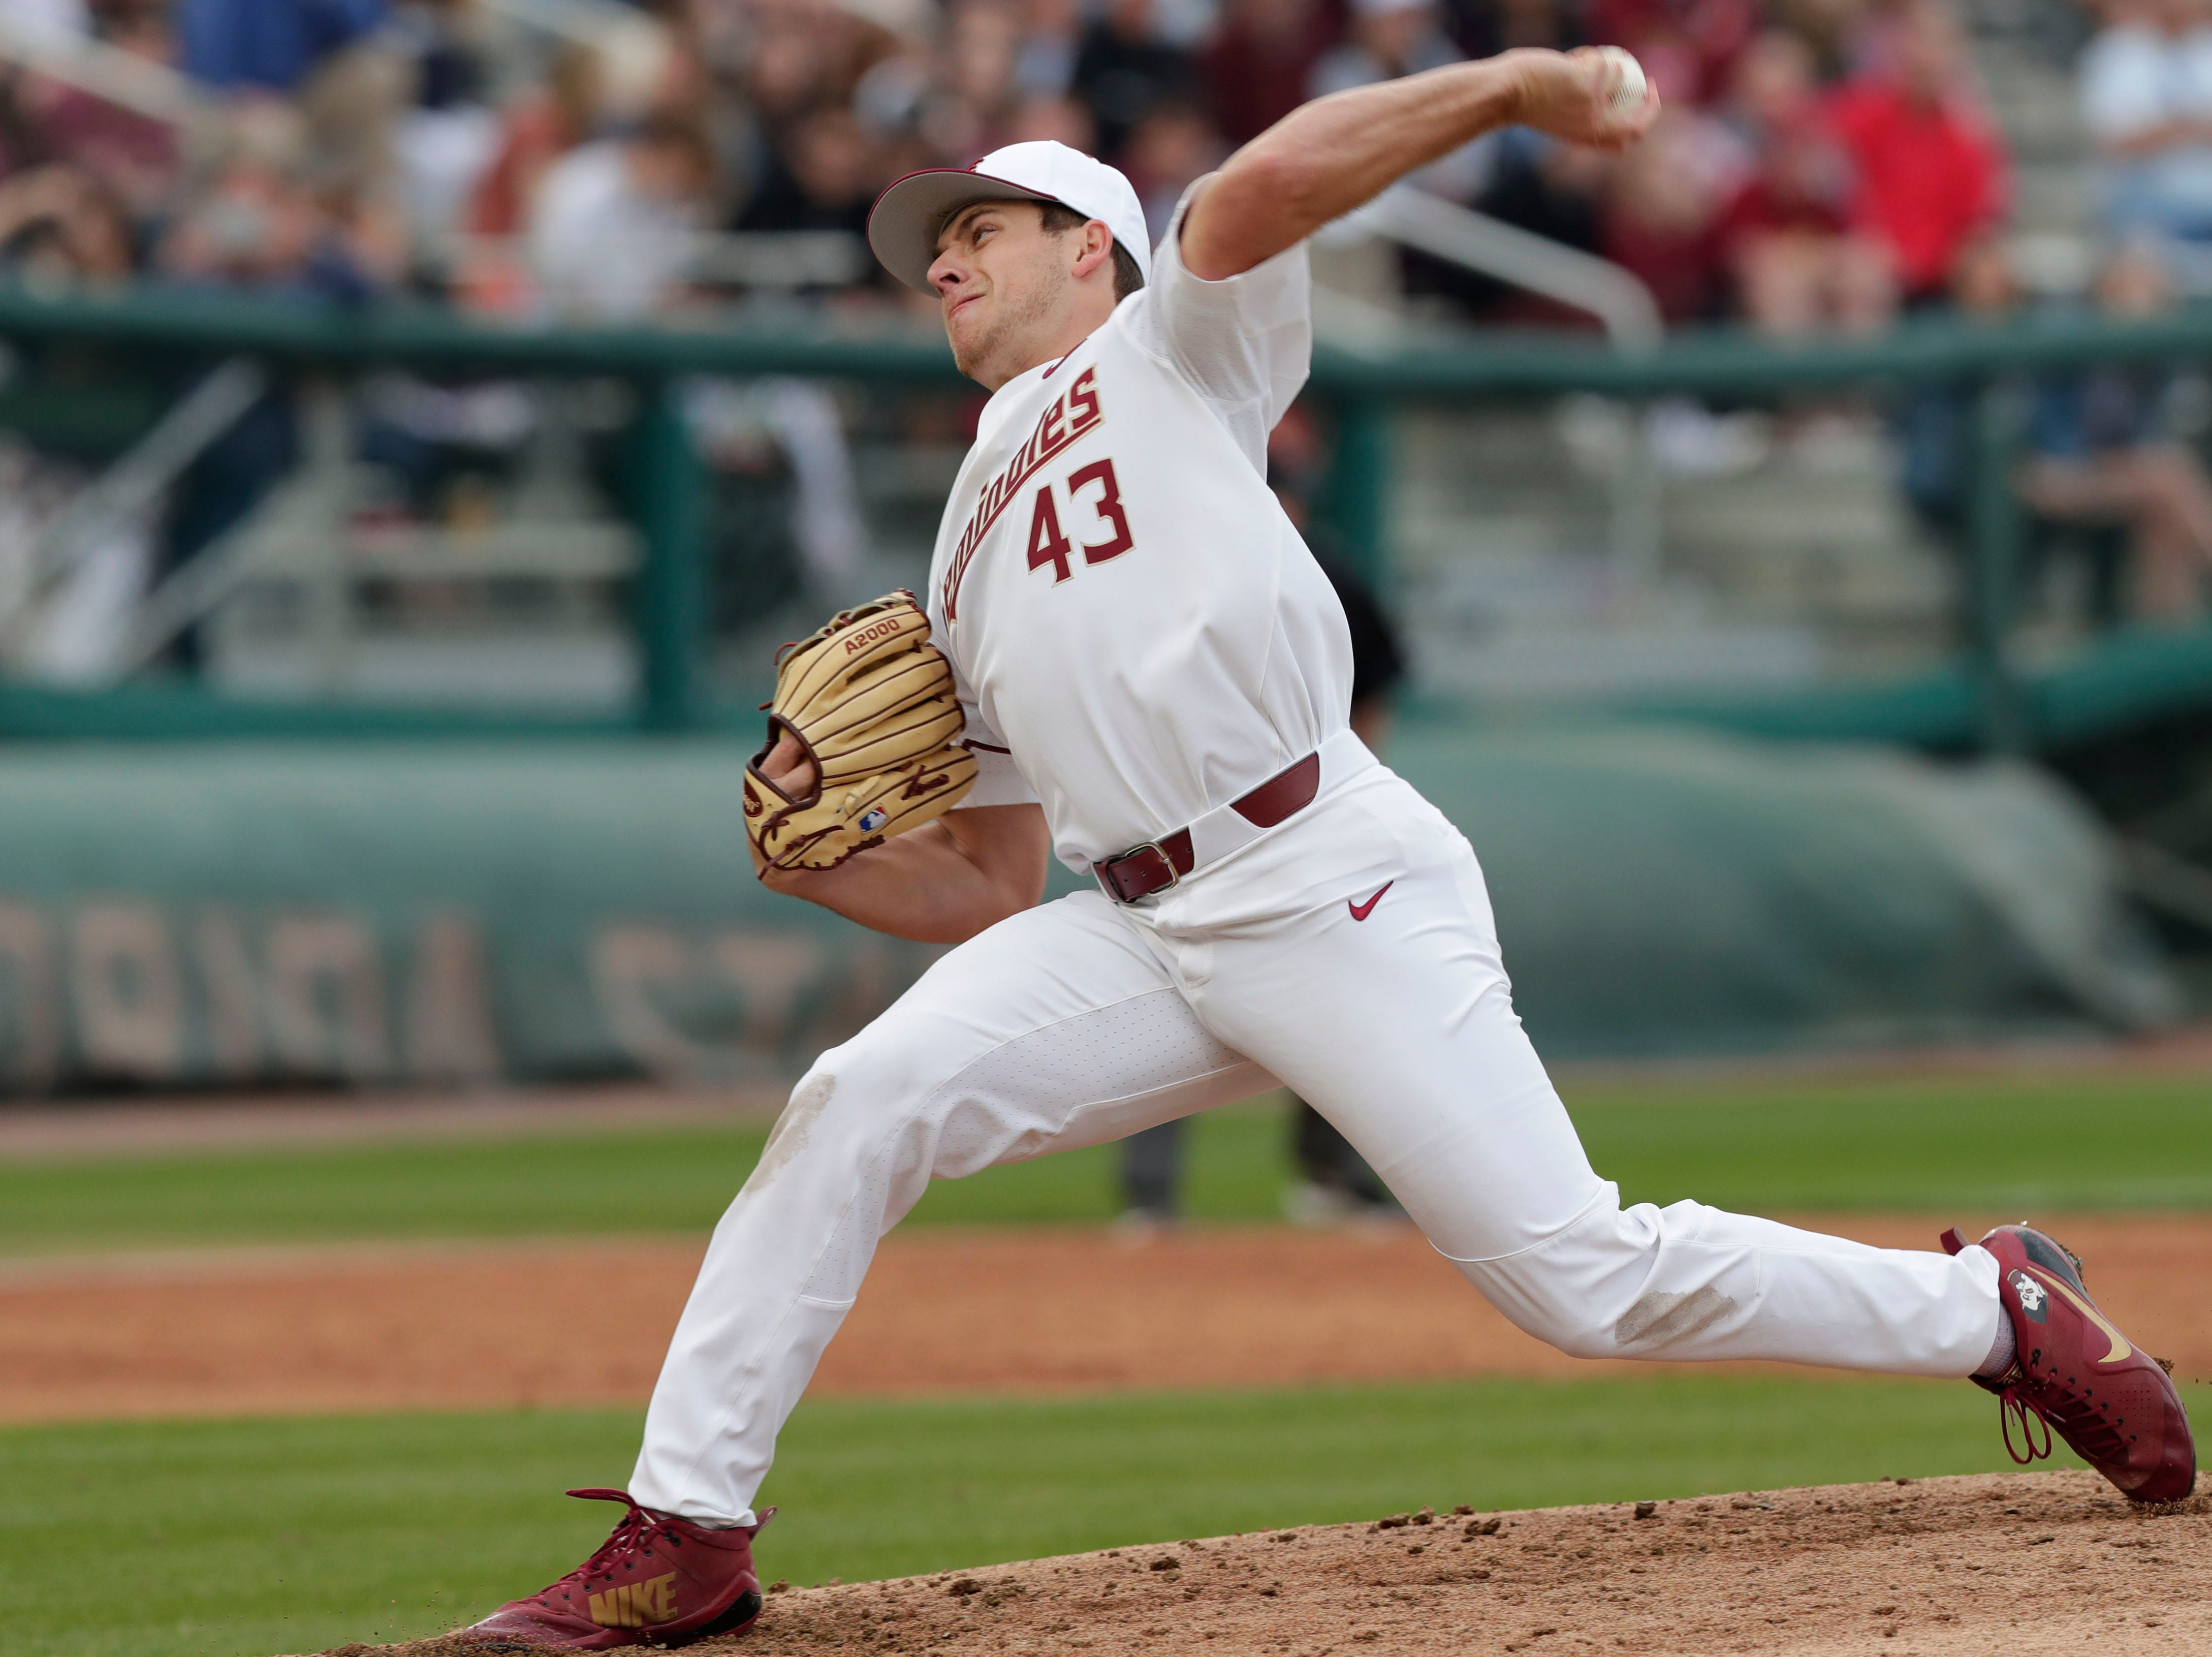 Florida State Seminoles left handed pitcher/Outfielder Drew Parrish (43) pitches the ball as the Florida State Seminoles host the Maine Black Bears in the 2019 season opener game, Friday Feb. 15, 2019.